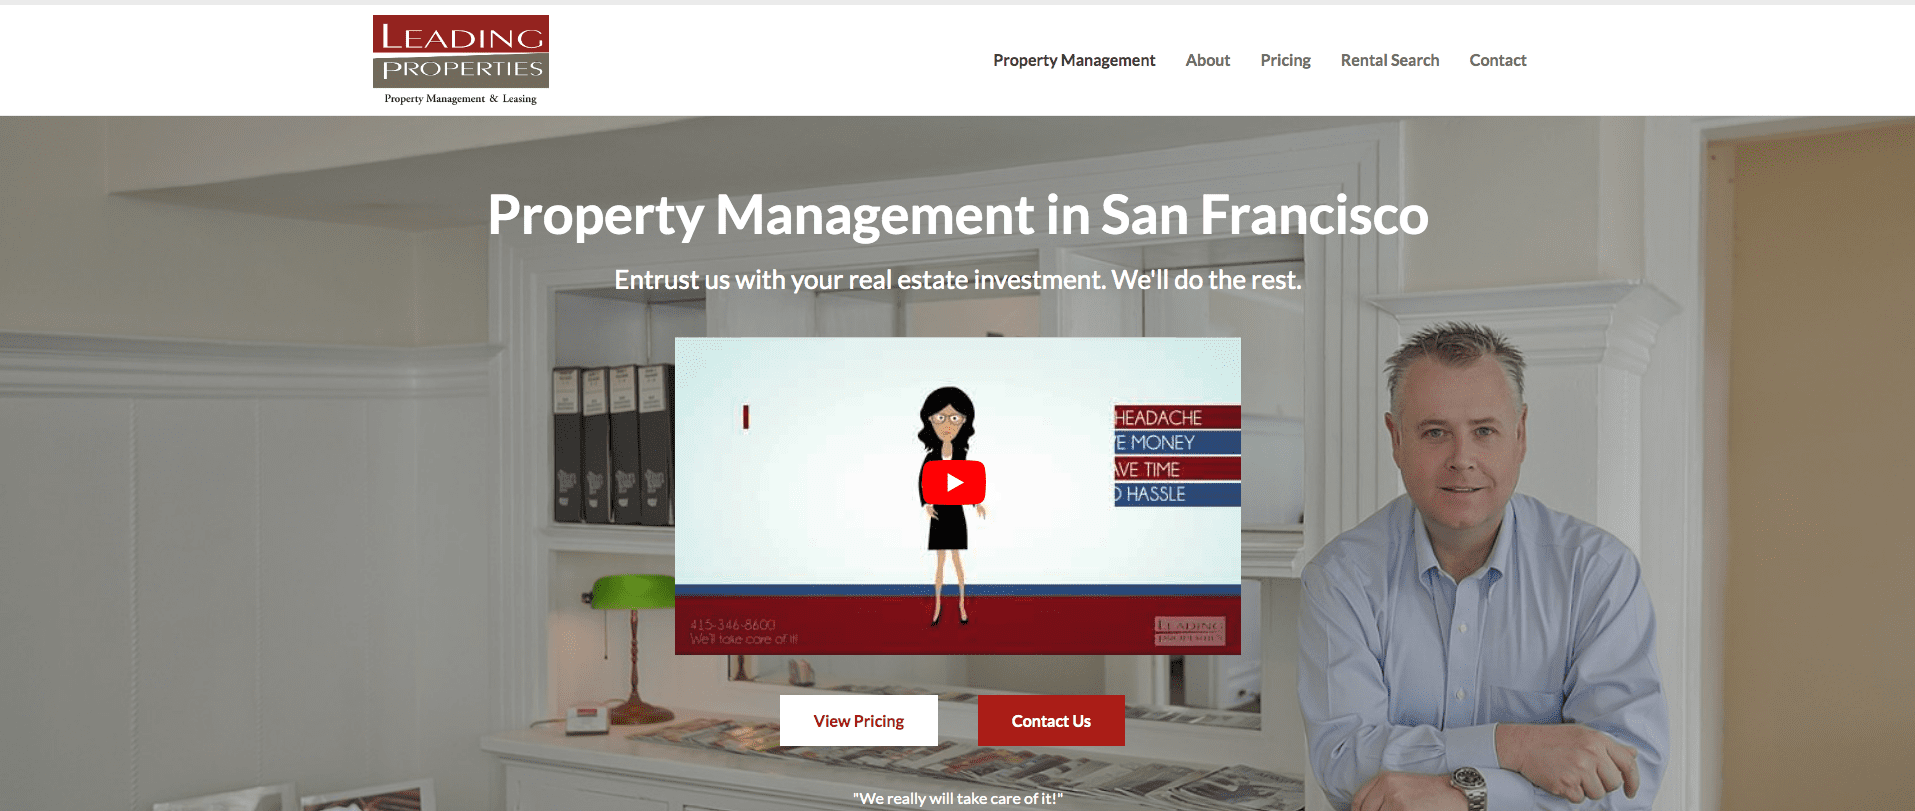 leading properties, San Fran Property Management company website